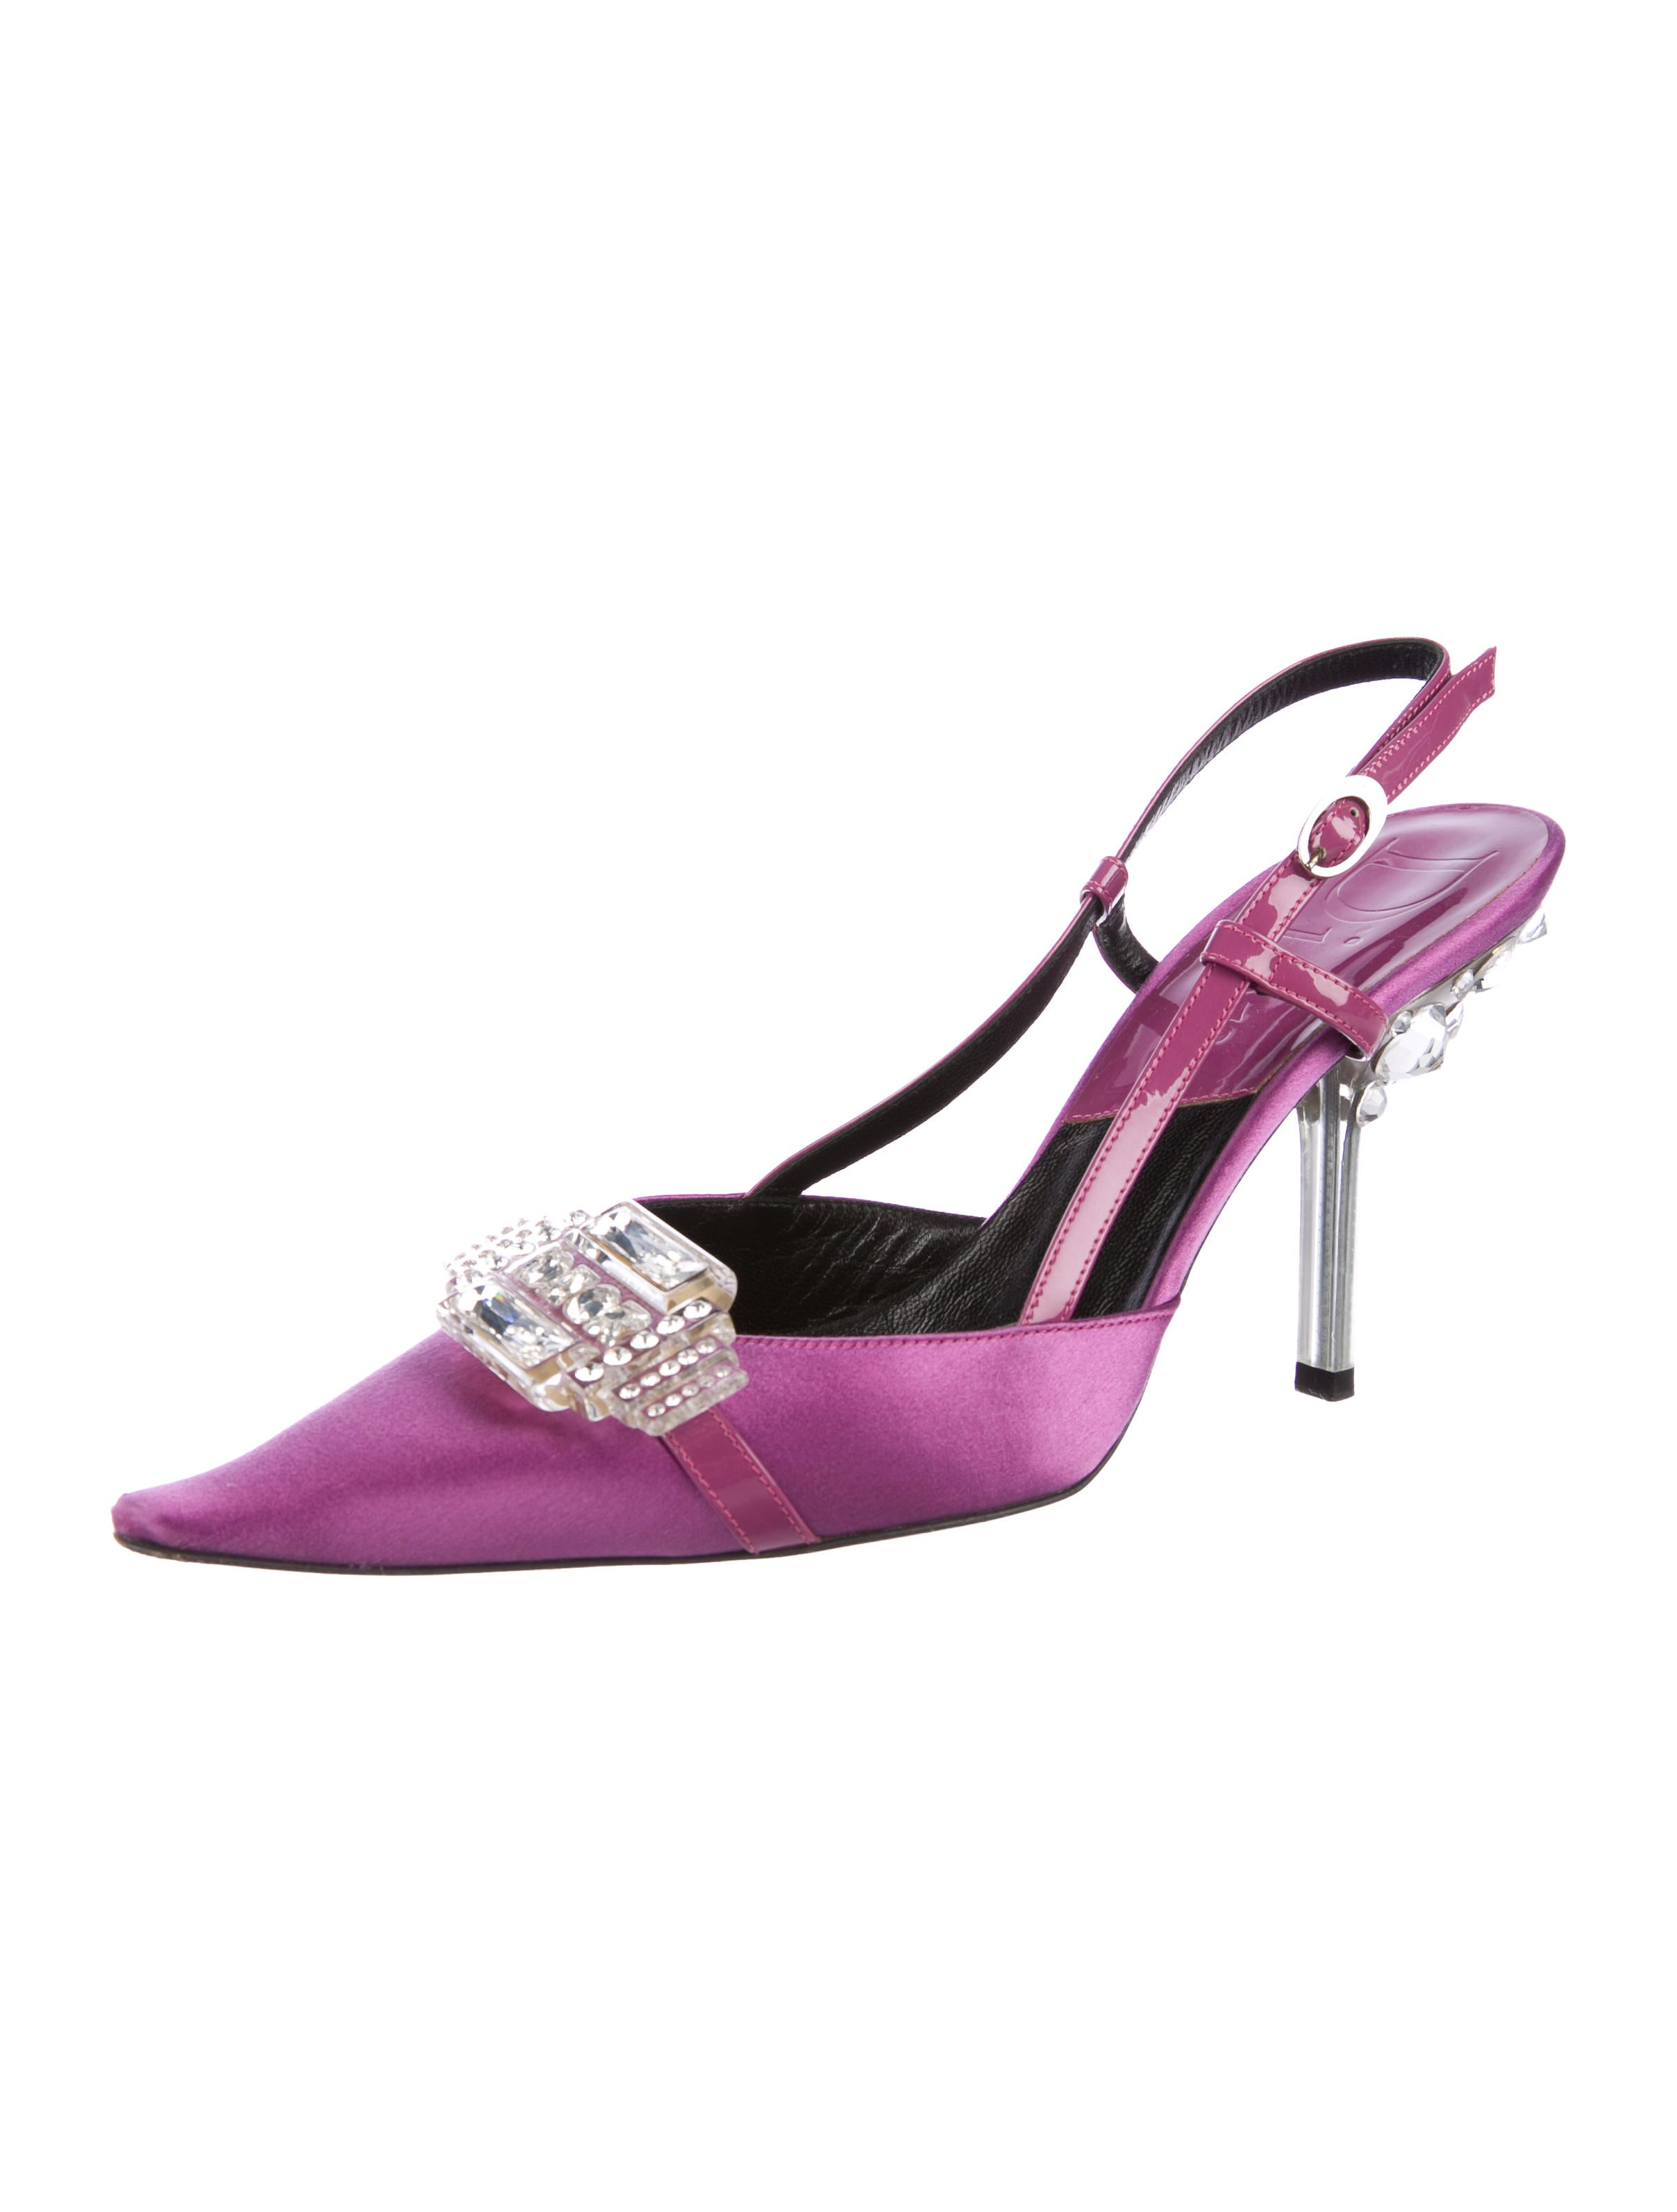 Christian Dior Satin Embellished Pumps geniue stockist outlet wholesale price free shipping limited edition for sale very cheap new styles cheap online DoAhyQT